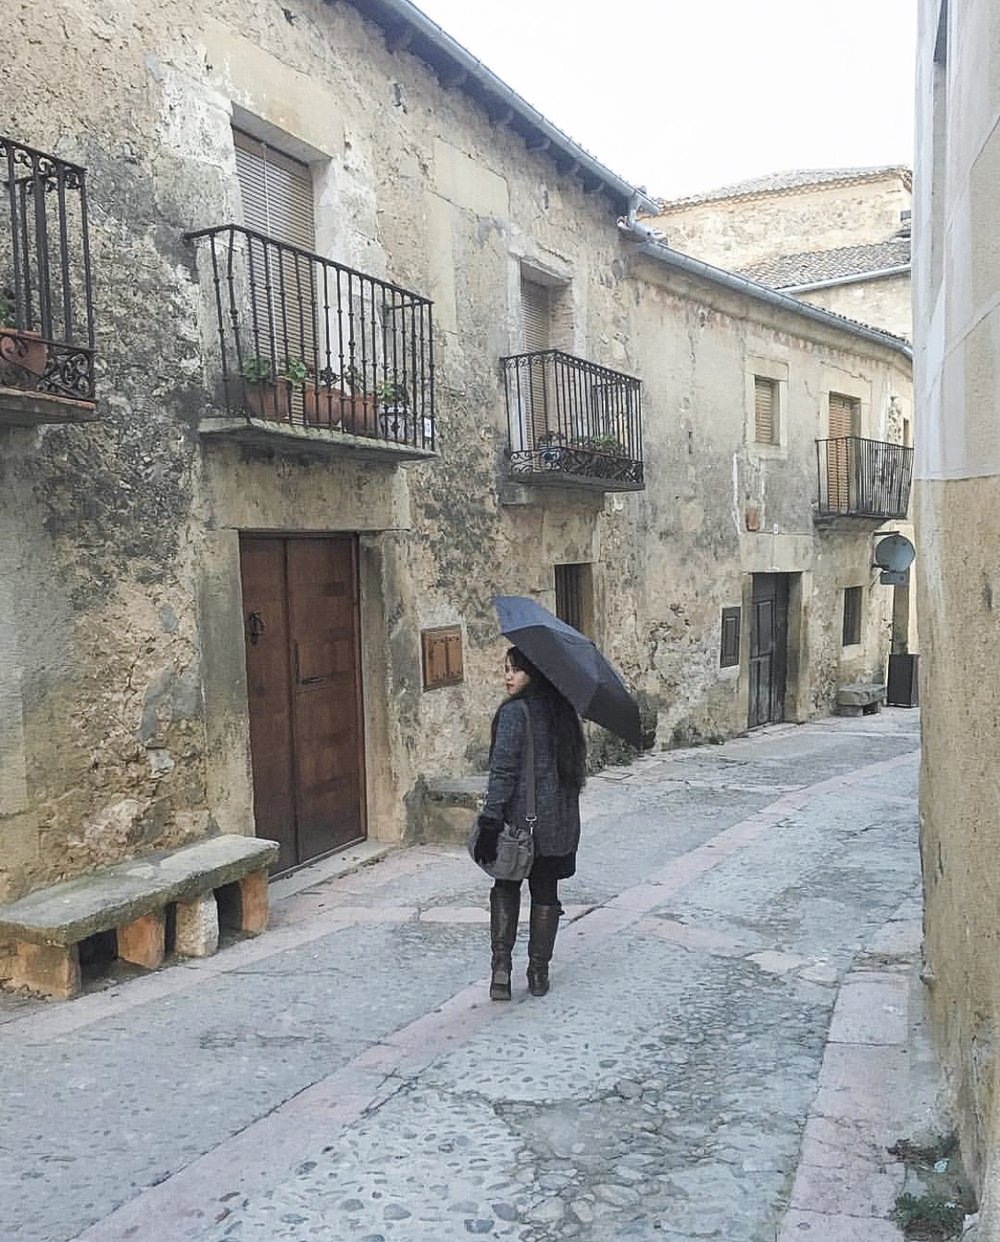 In the 100 person town of Pedraza [Pedraza, Spain]